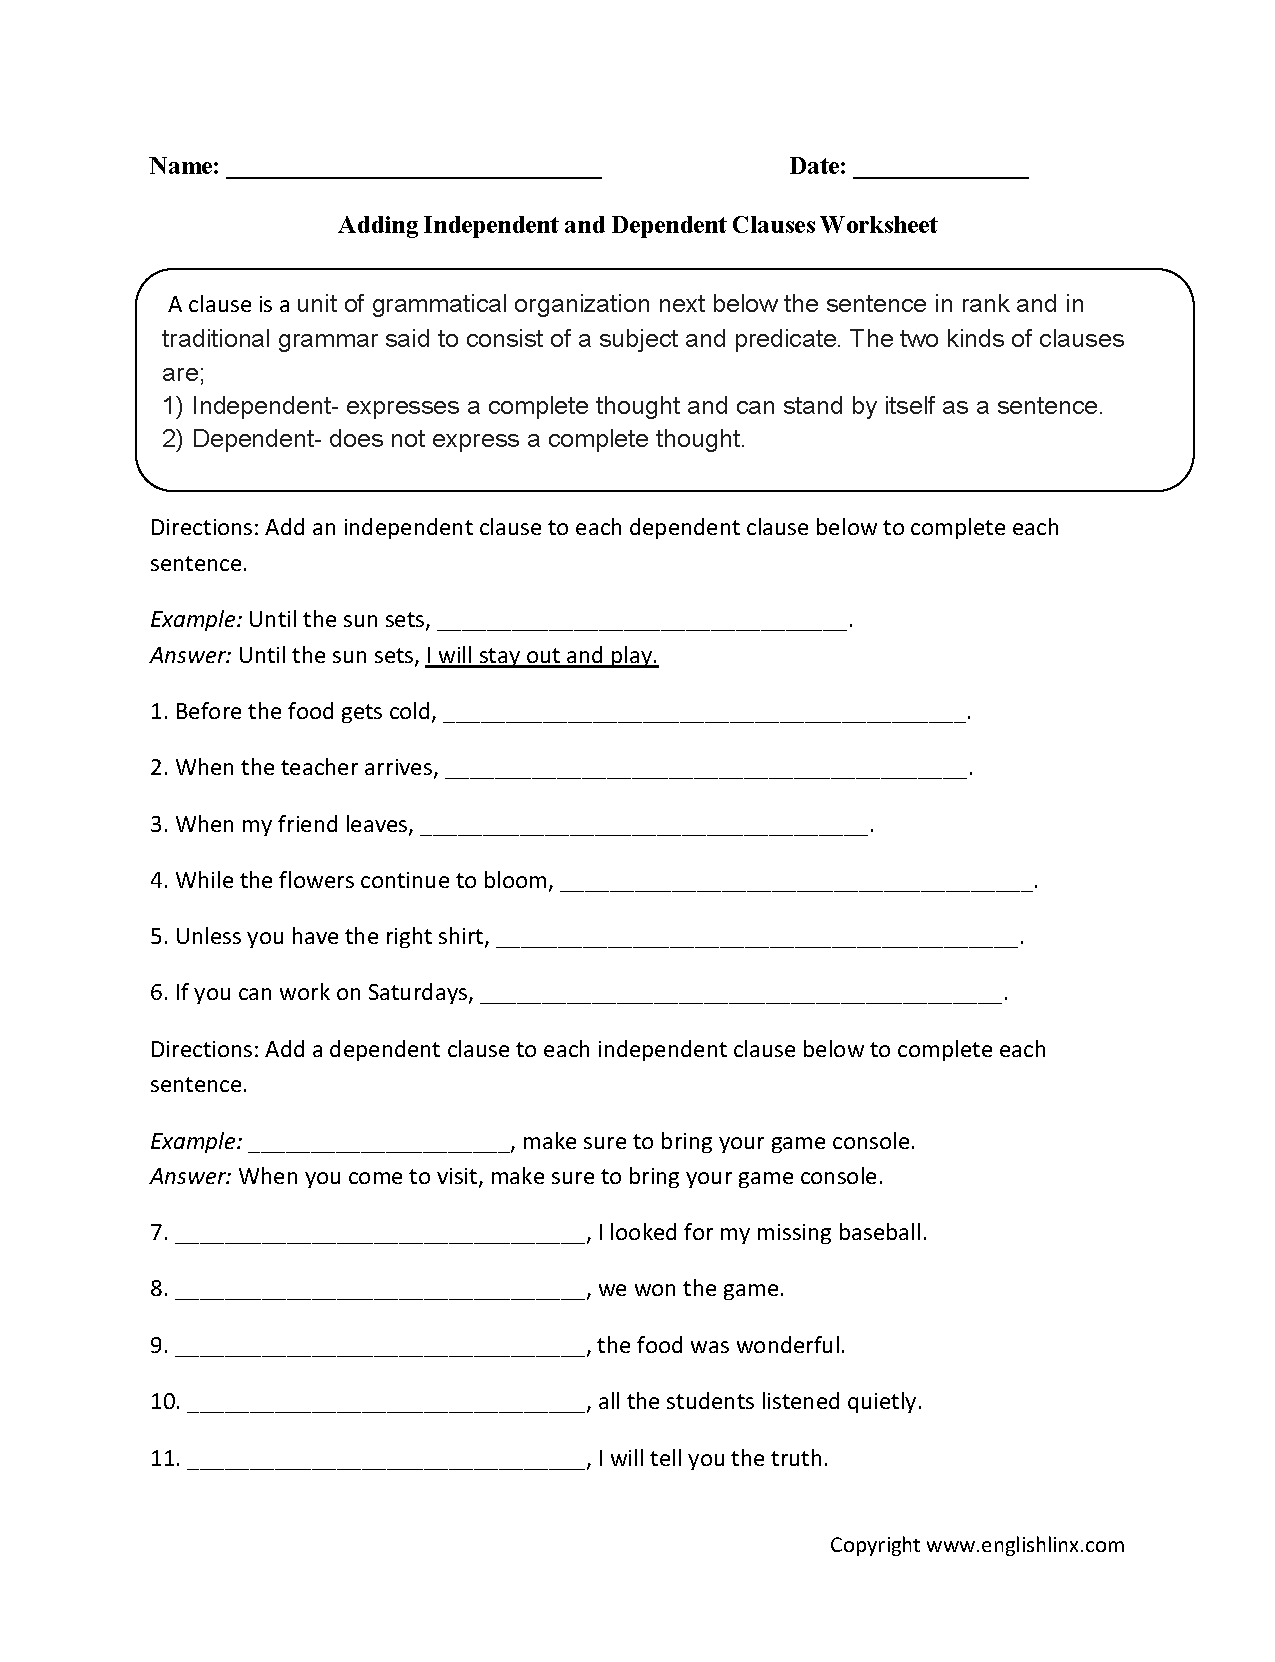 worksheet Comma Splice Worksheet adding dependent and independent clauses worksheet vocabulary worksheet